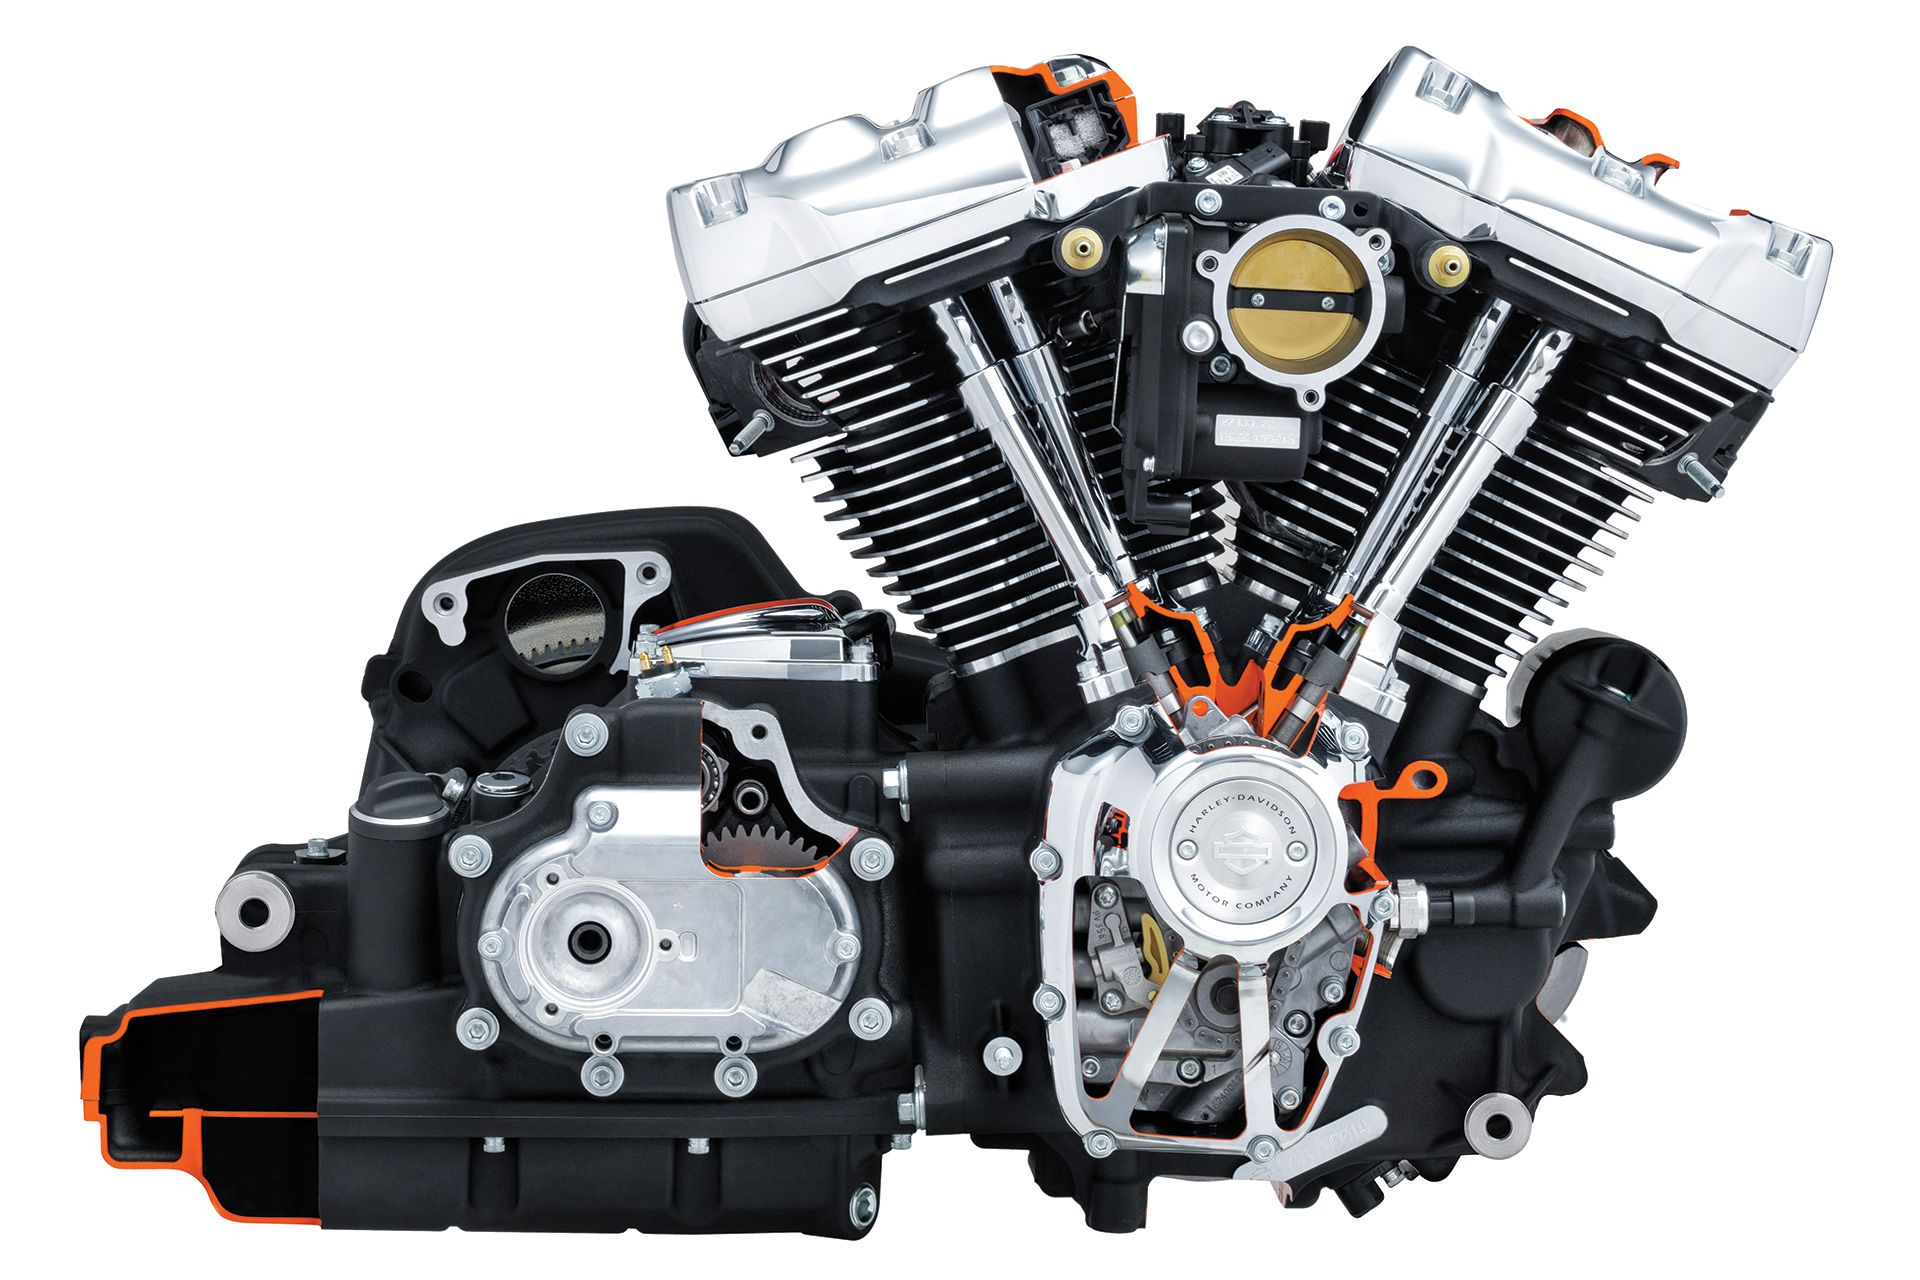 Harley-Davidson's New Milwaukee-Eight Big Twin Engine | Cycle World